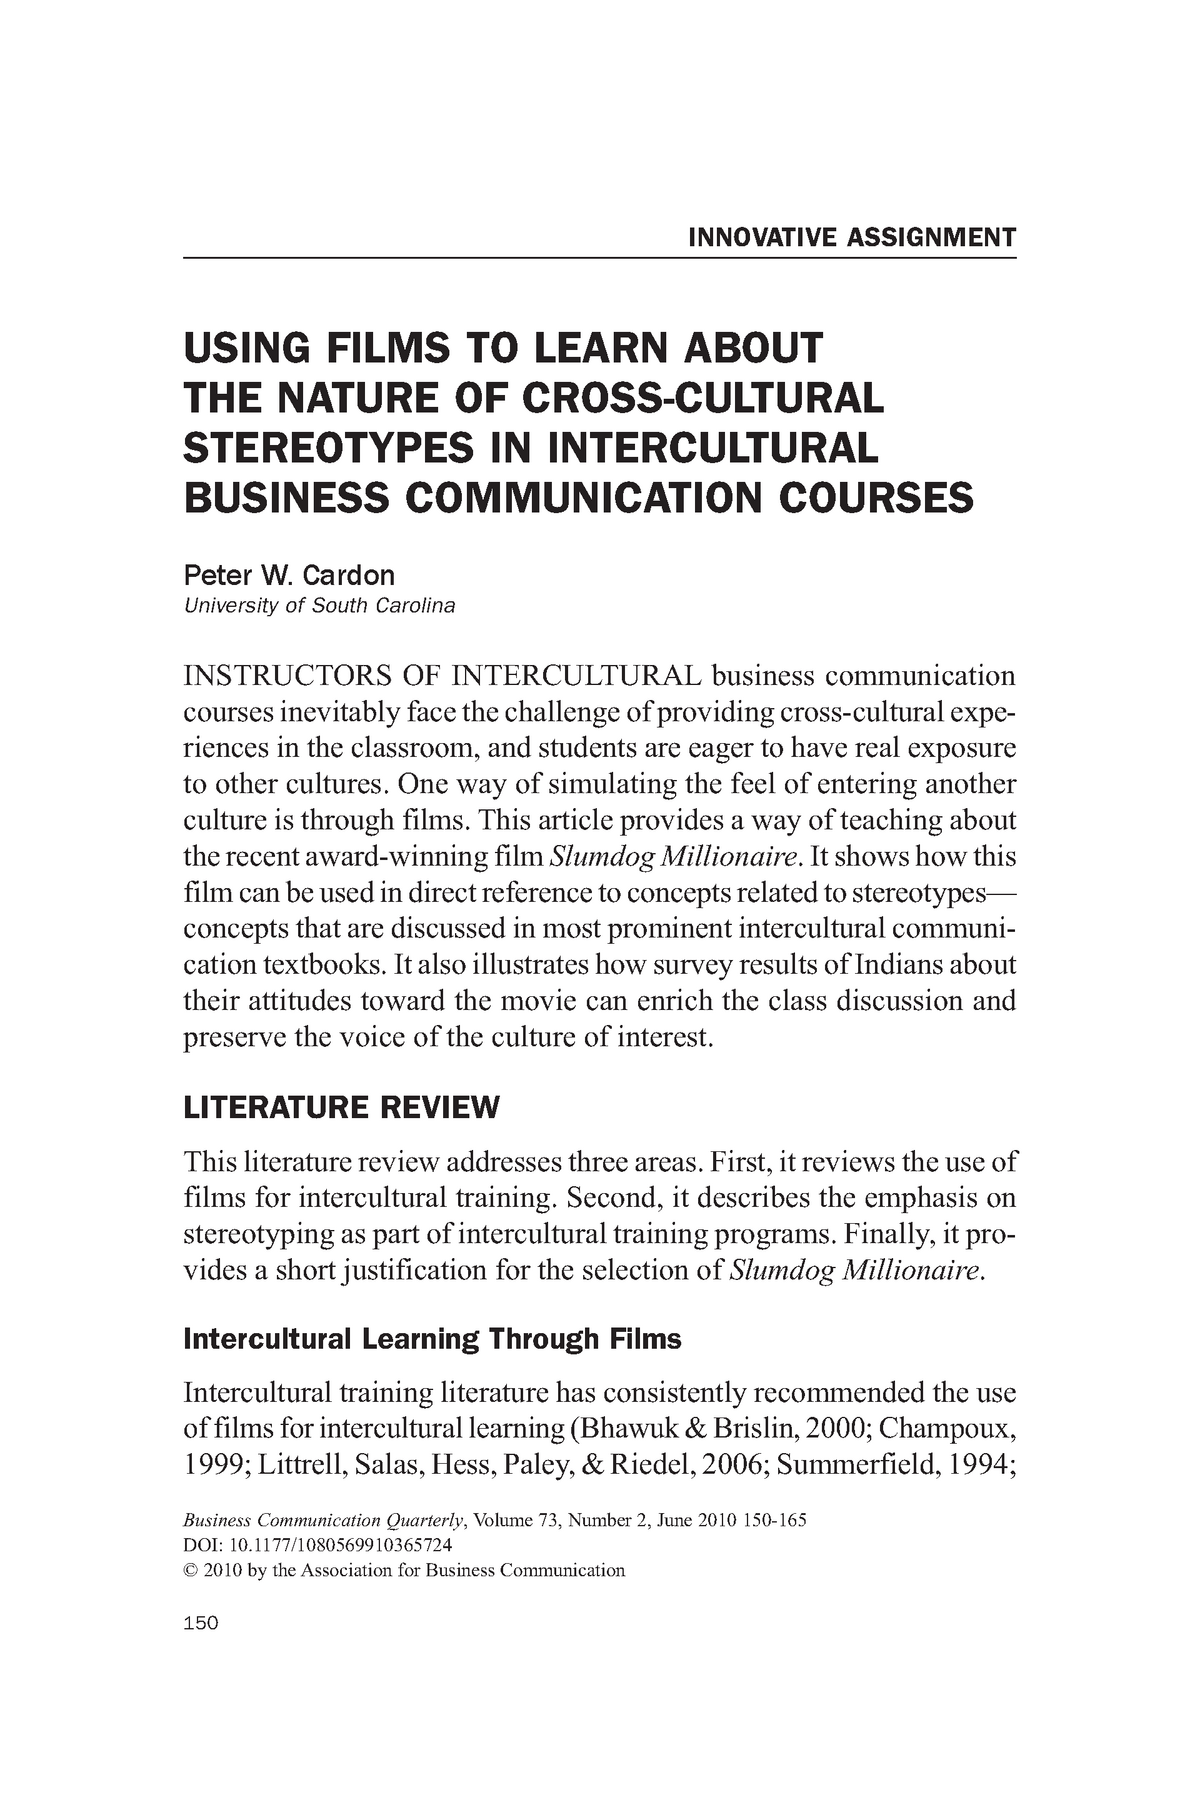 Using Films to Learn About Cross-cultural Communications